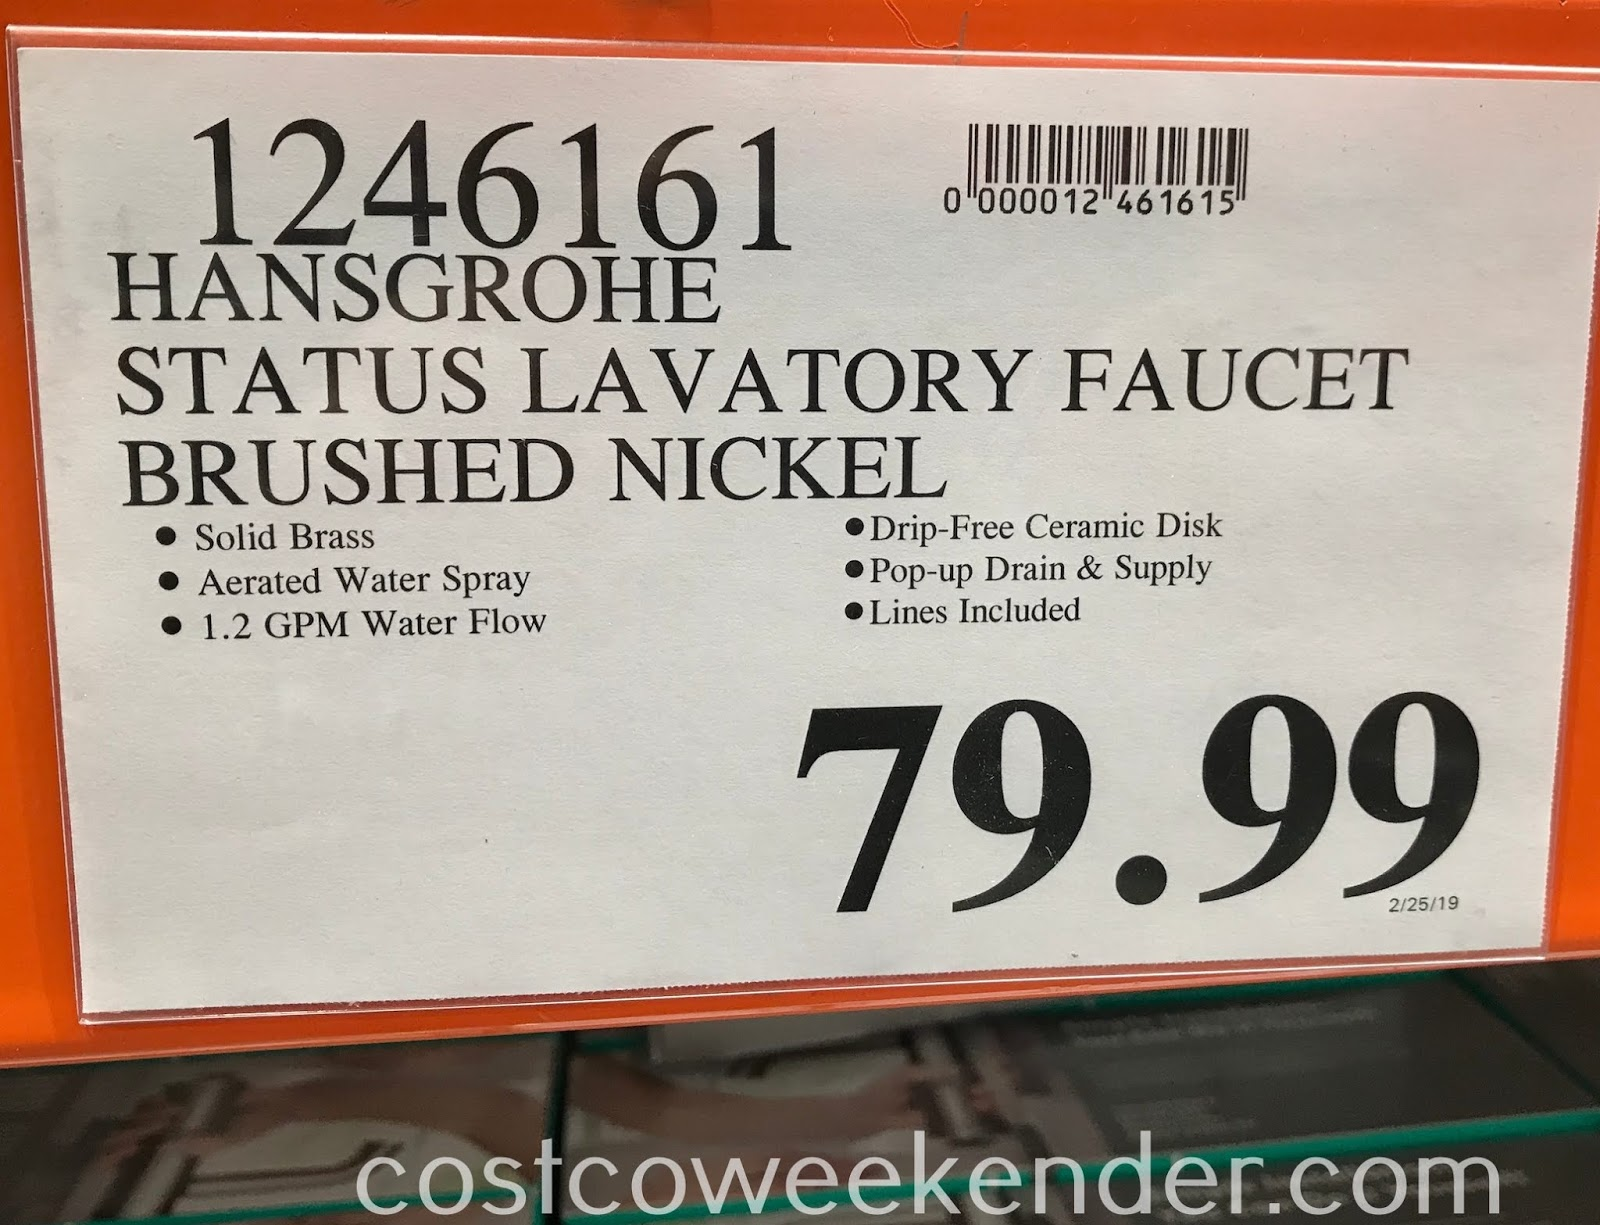 Deal for the Hansgrohe Status Lavatory Faucet at Costco